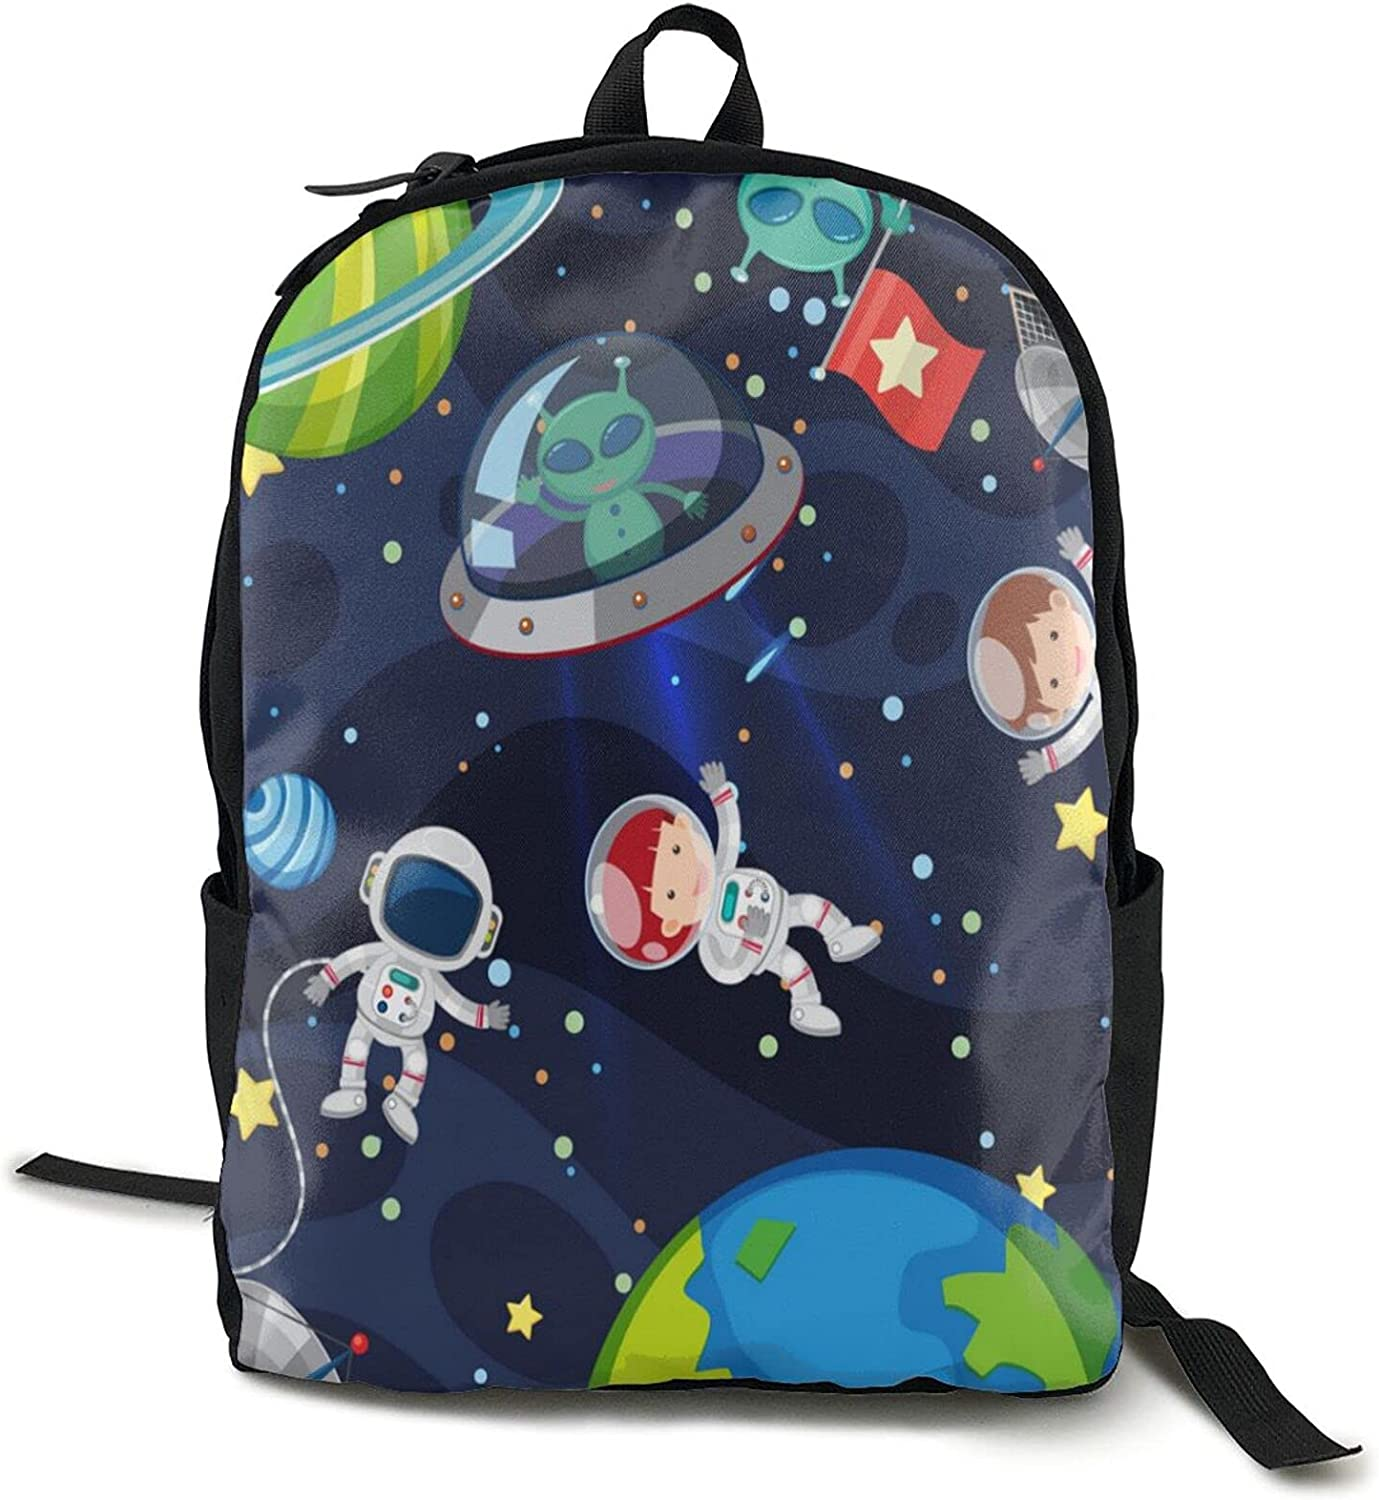 Year-end annual Over item handling ☆ account Canvas Backpack College School Daypack Wit Scene Casual